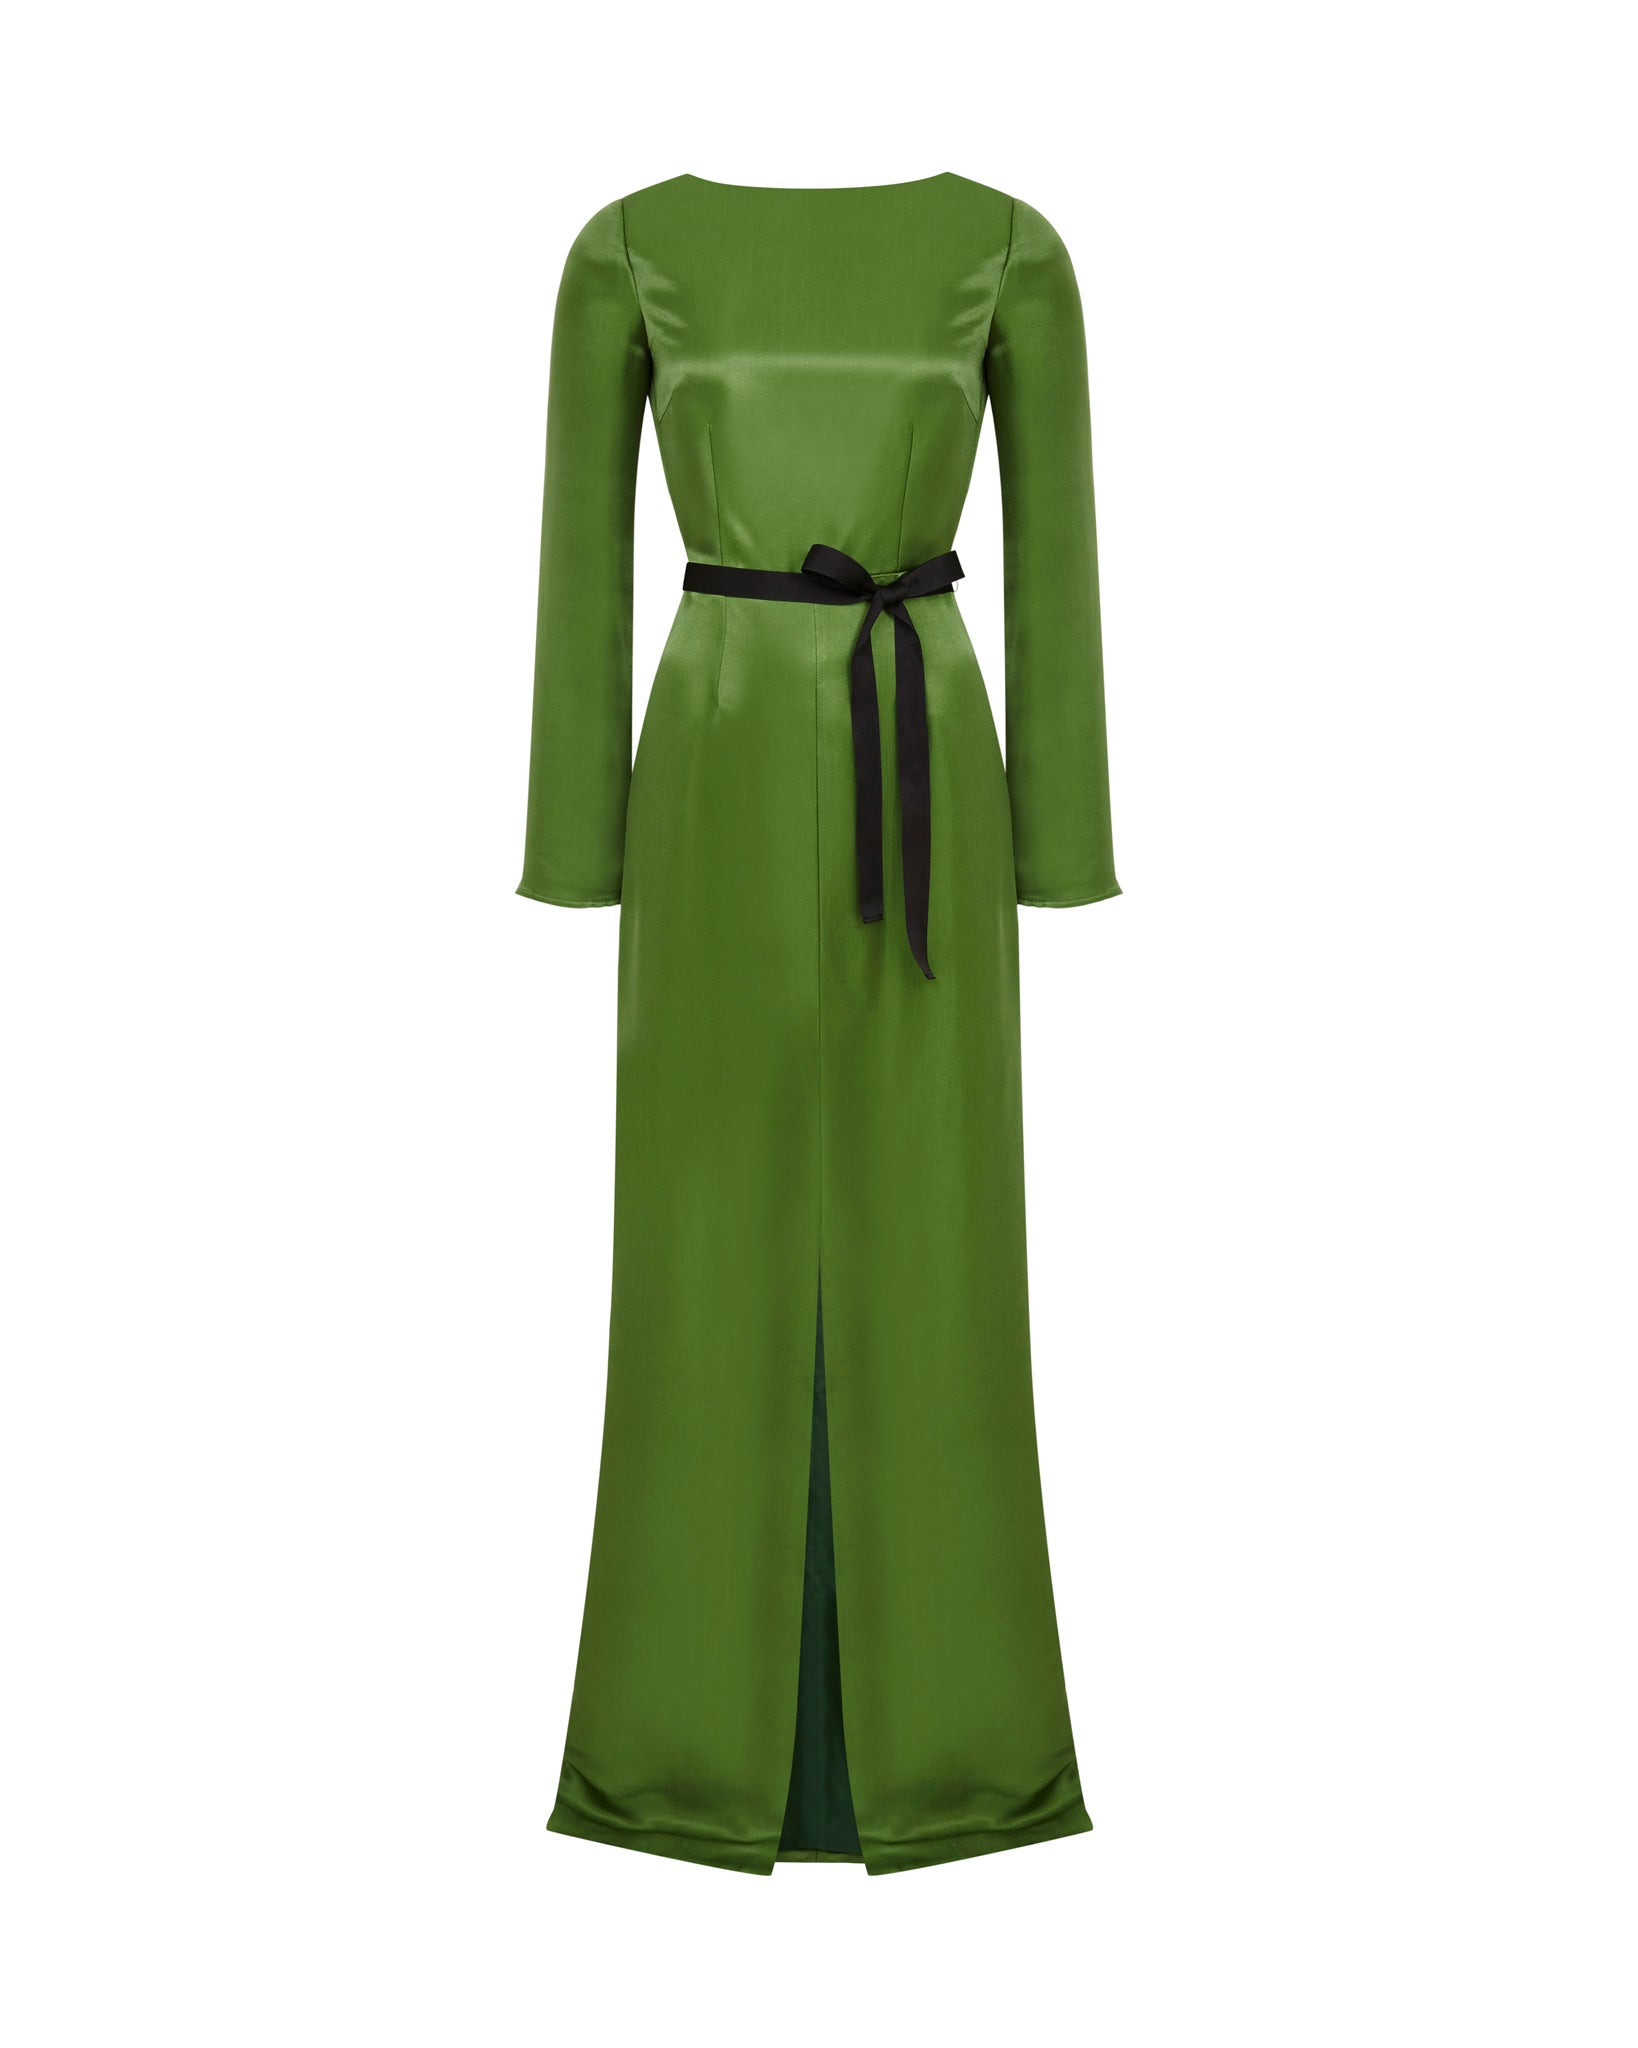 Althea Gown - Living Green